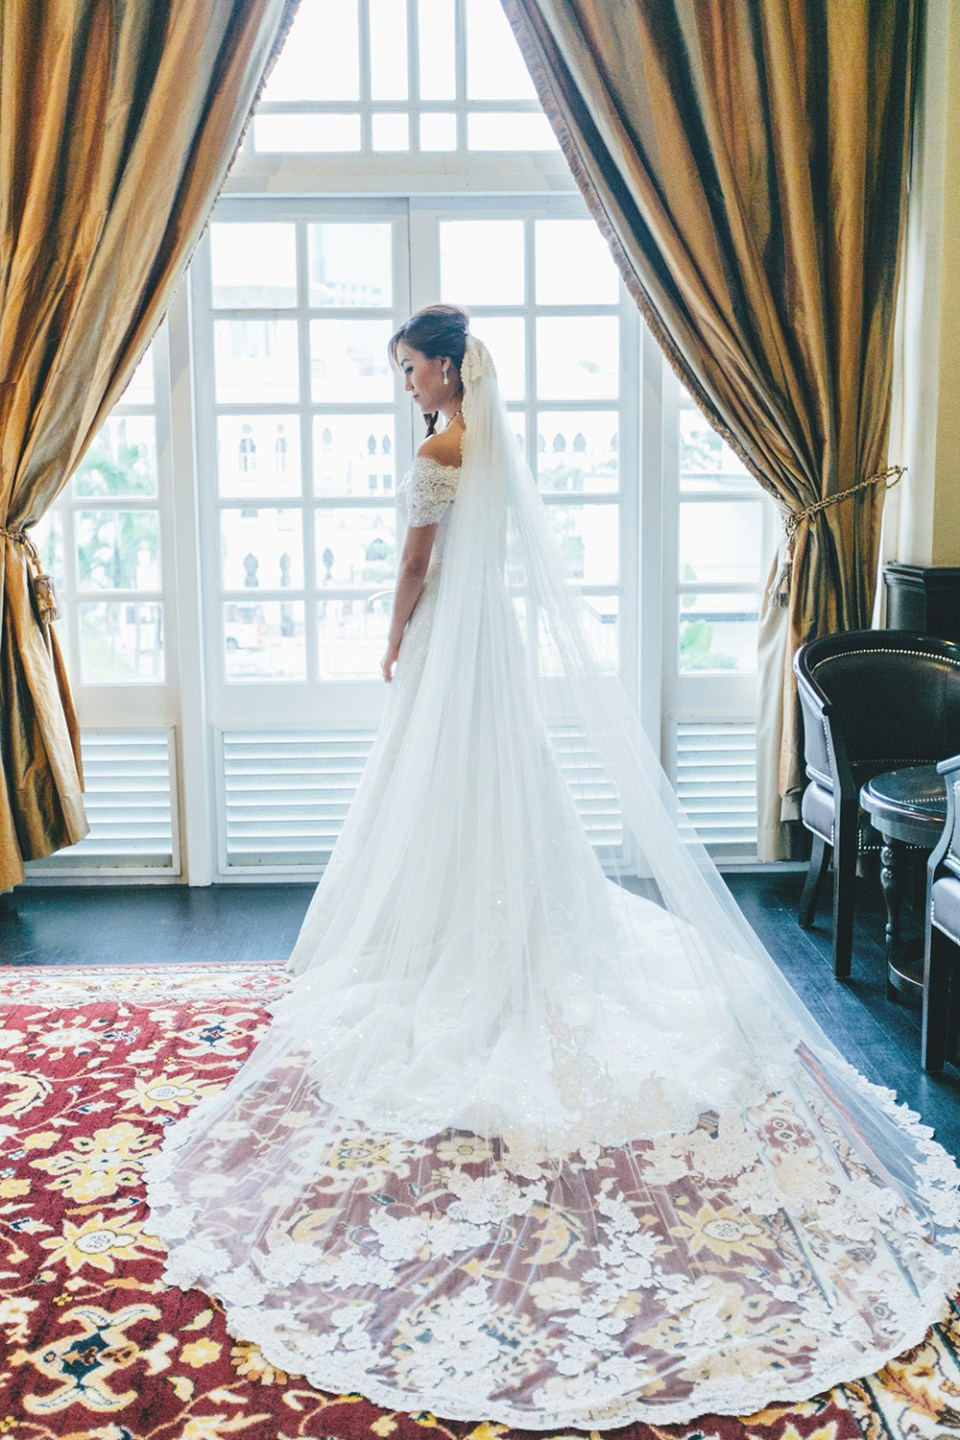 Pronovias bridal gown. Photo by Adam Ong Photography. www.theweddingnotebook.com